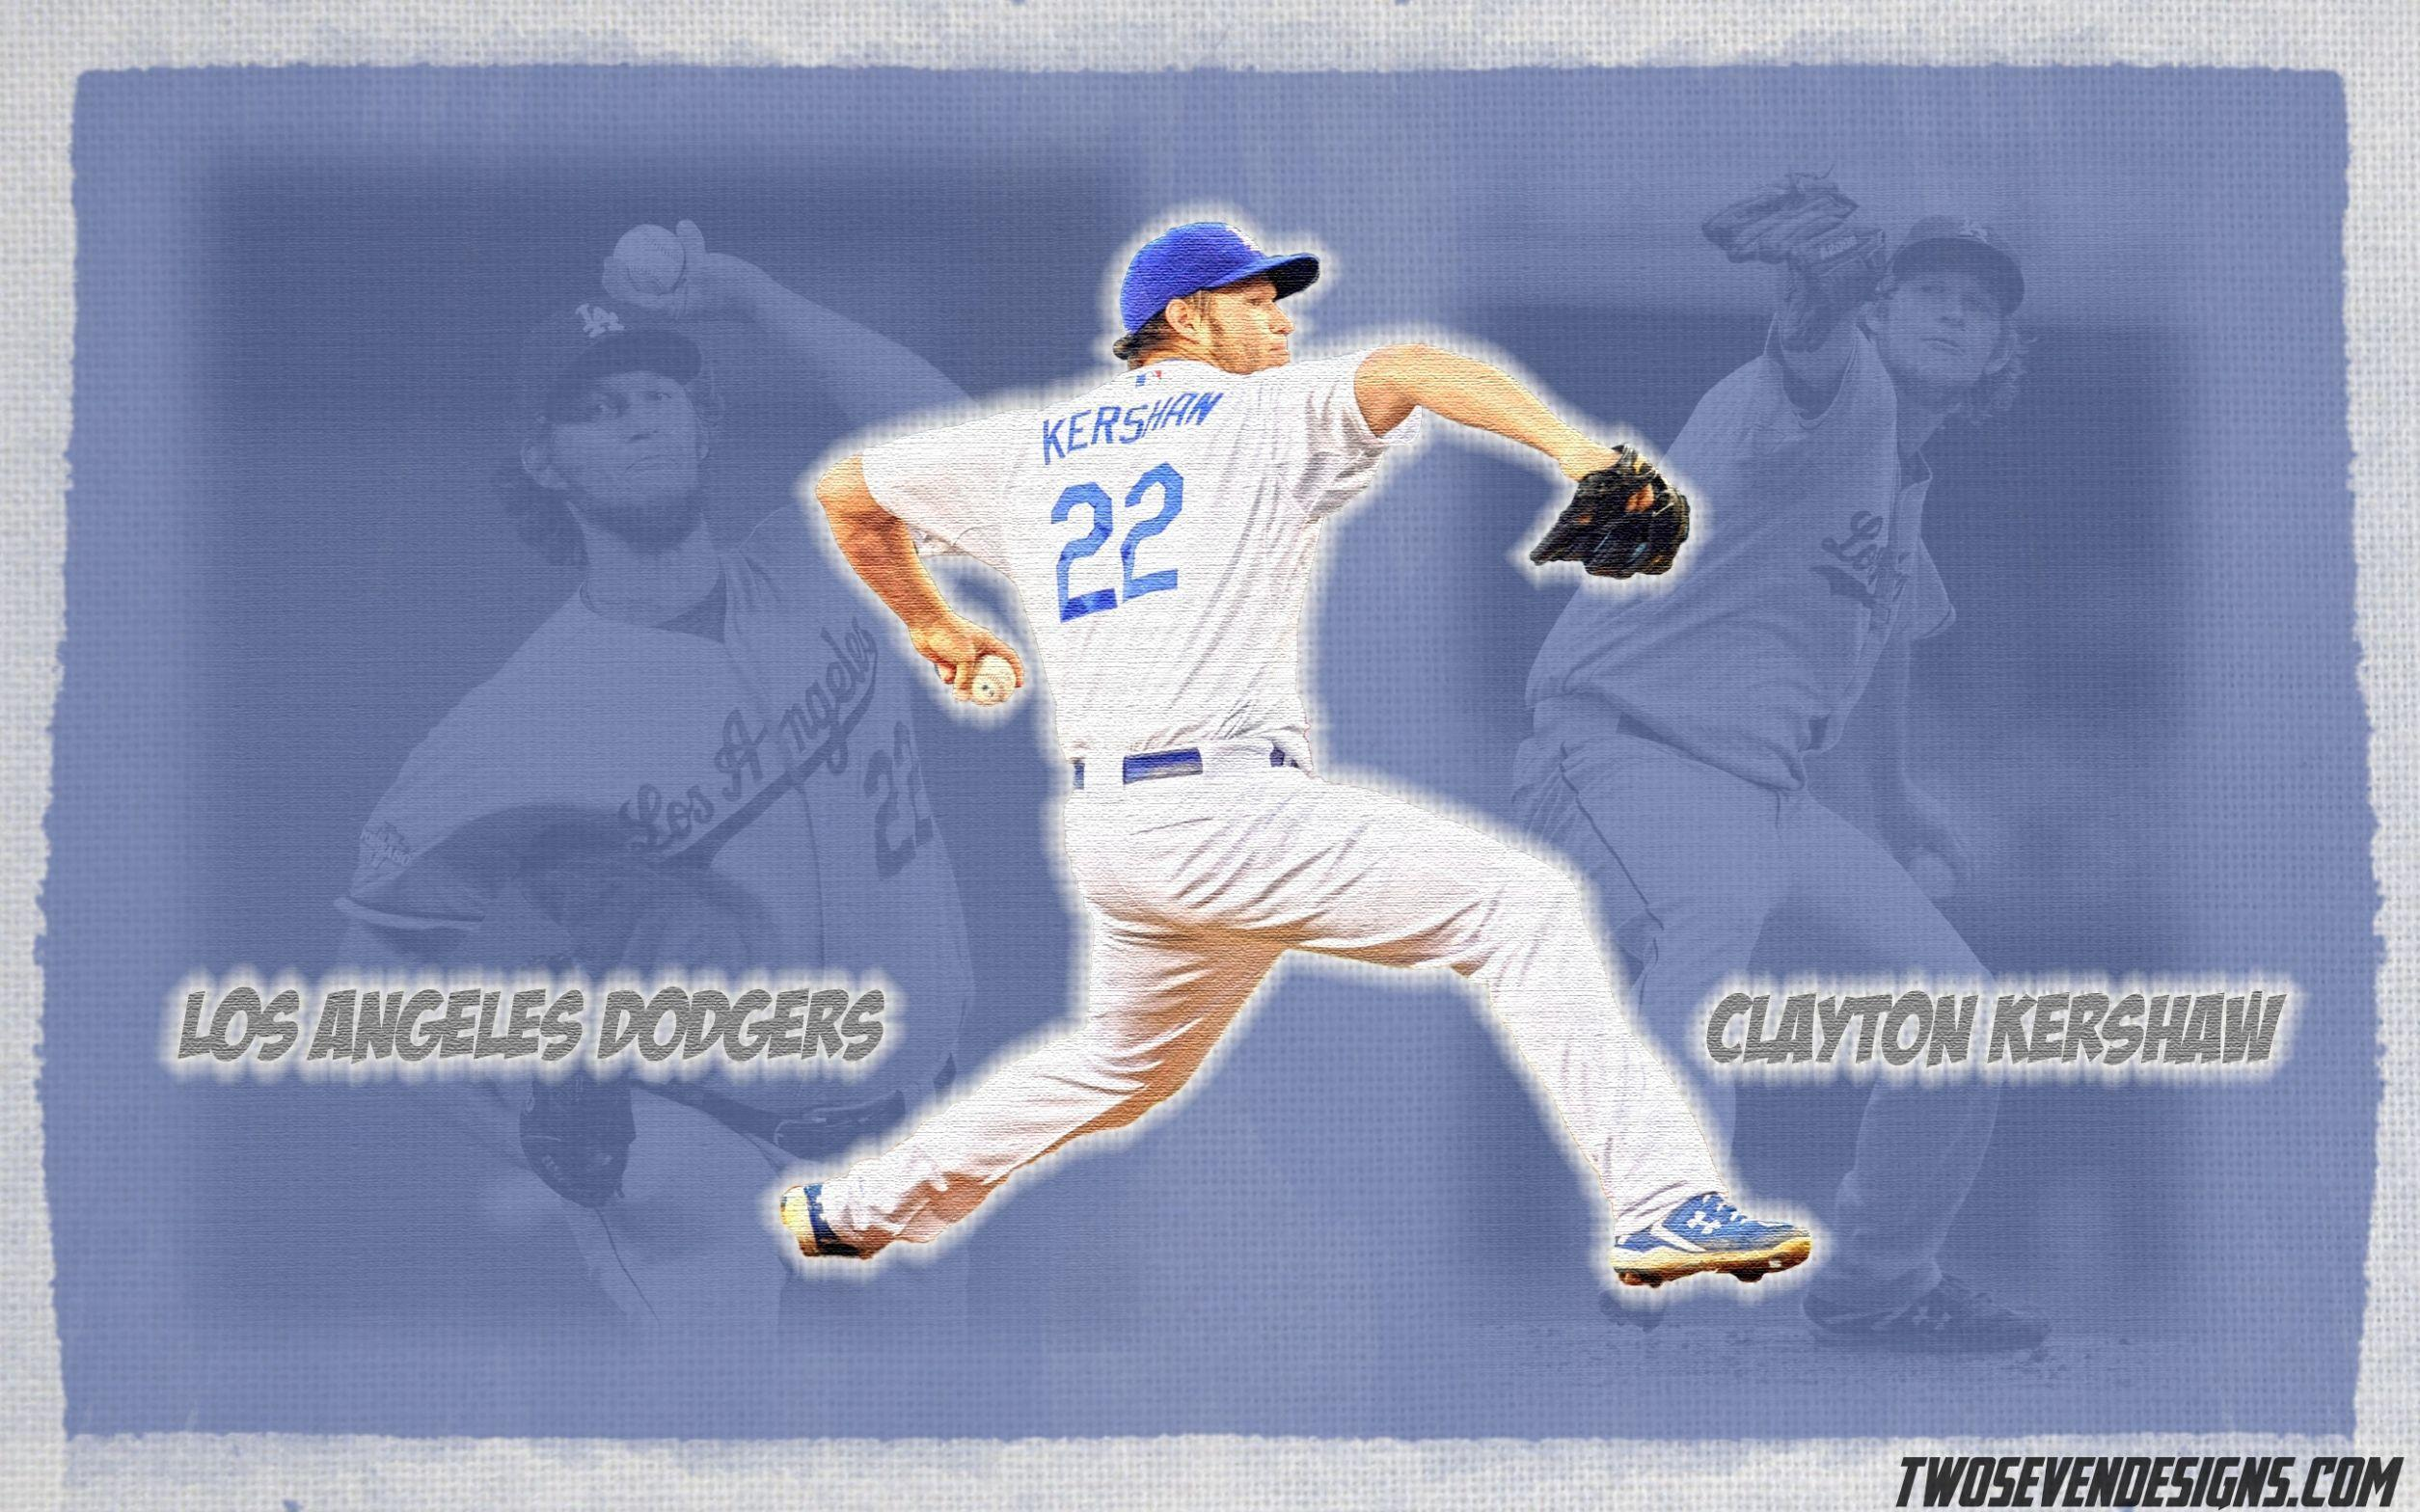 Nclayton Kershaw Wallpapers Full Hd for Clayton Kershaw Wallpapers